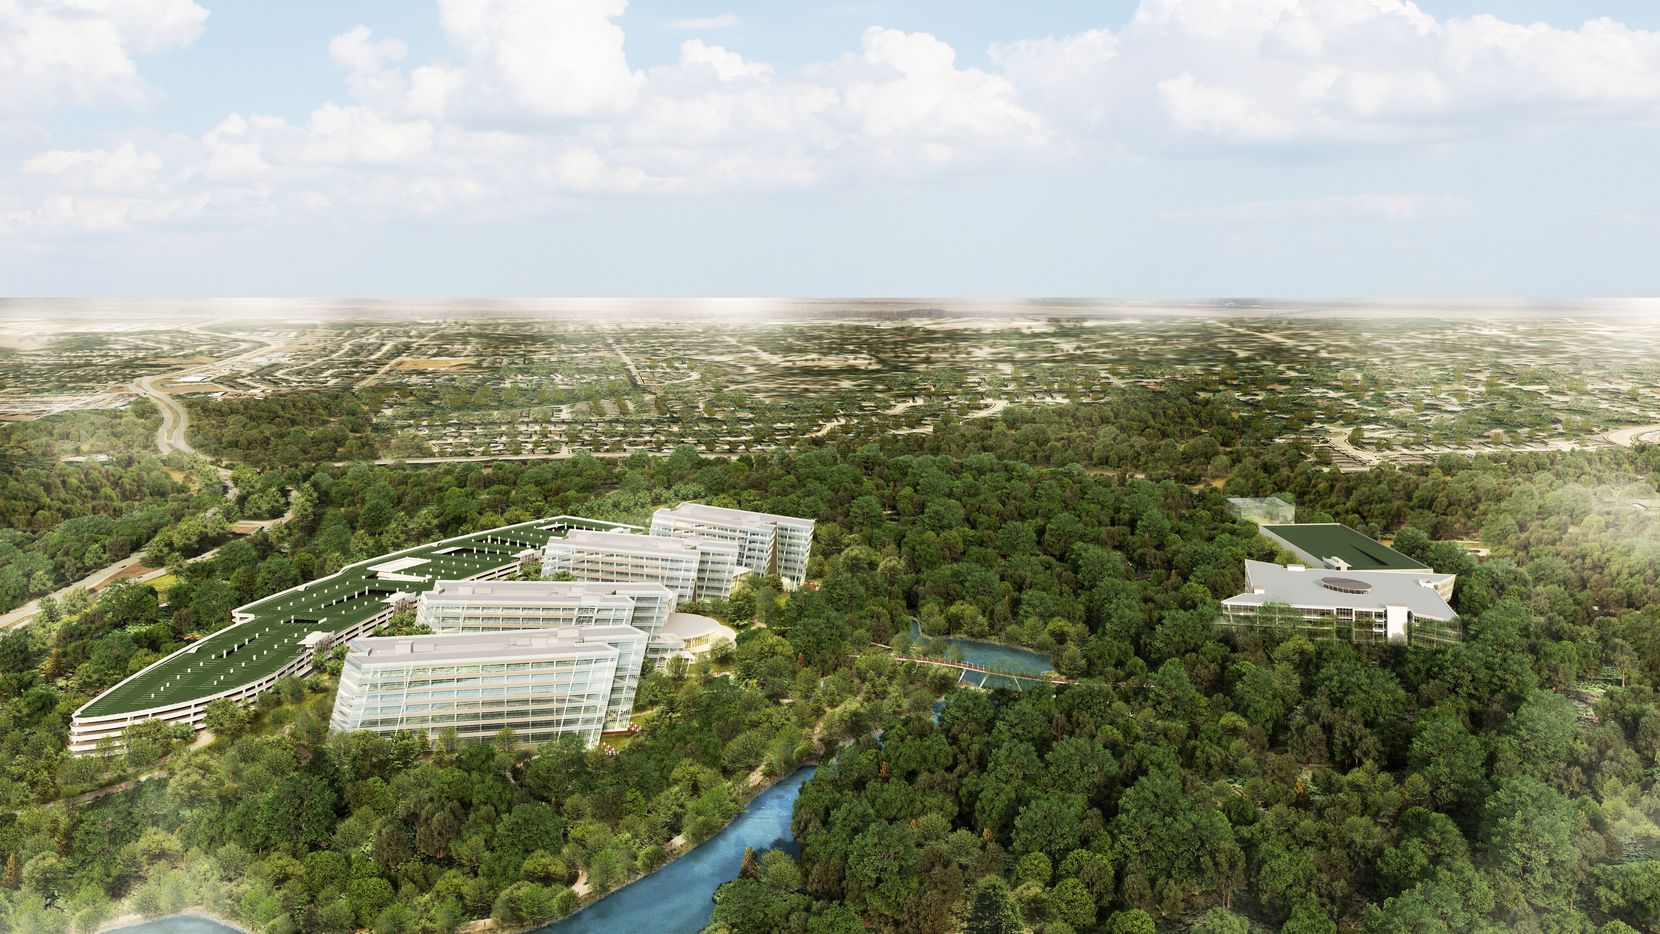 A rendering of American Airlines' plans for its new headquarters campus, set to open in 2019.